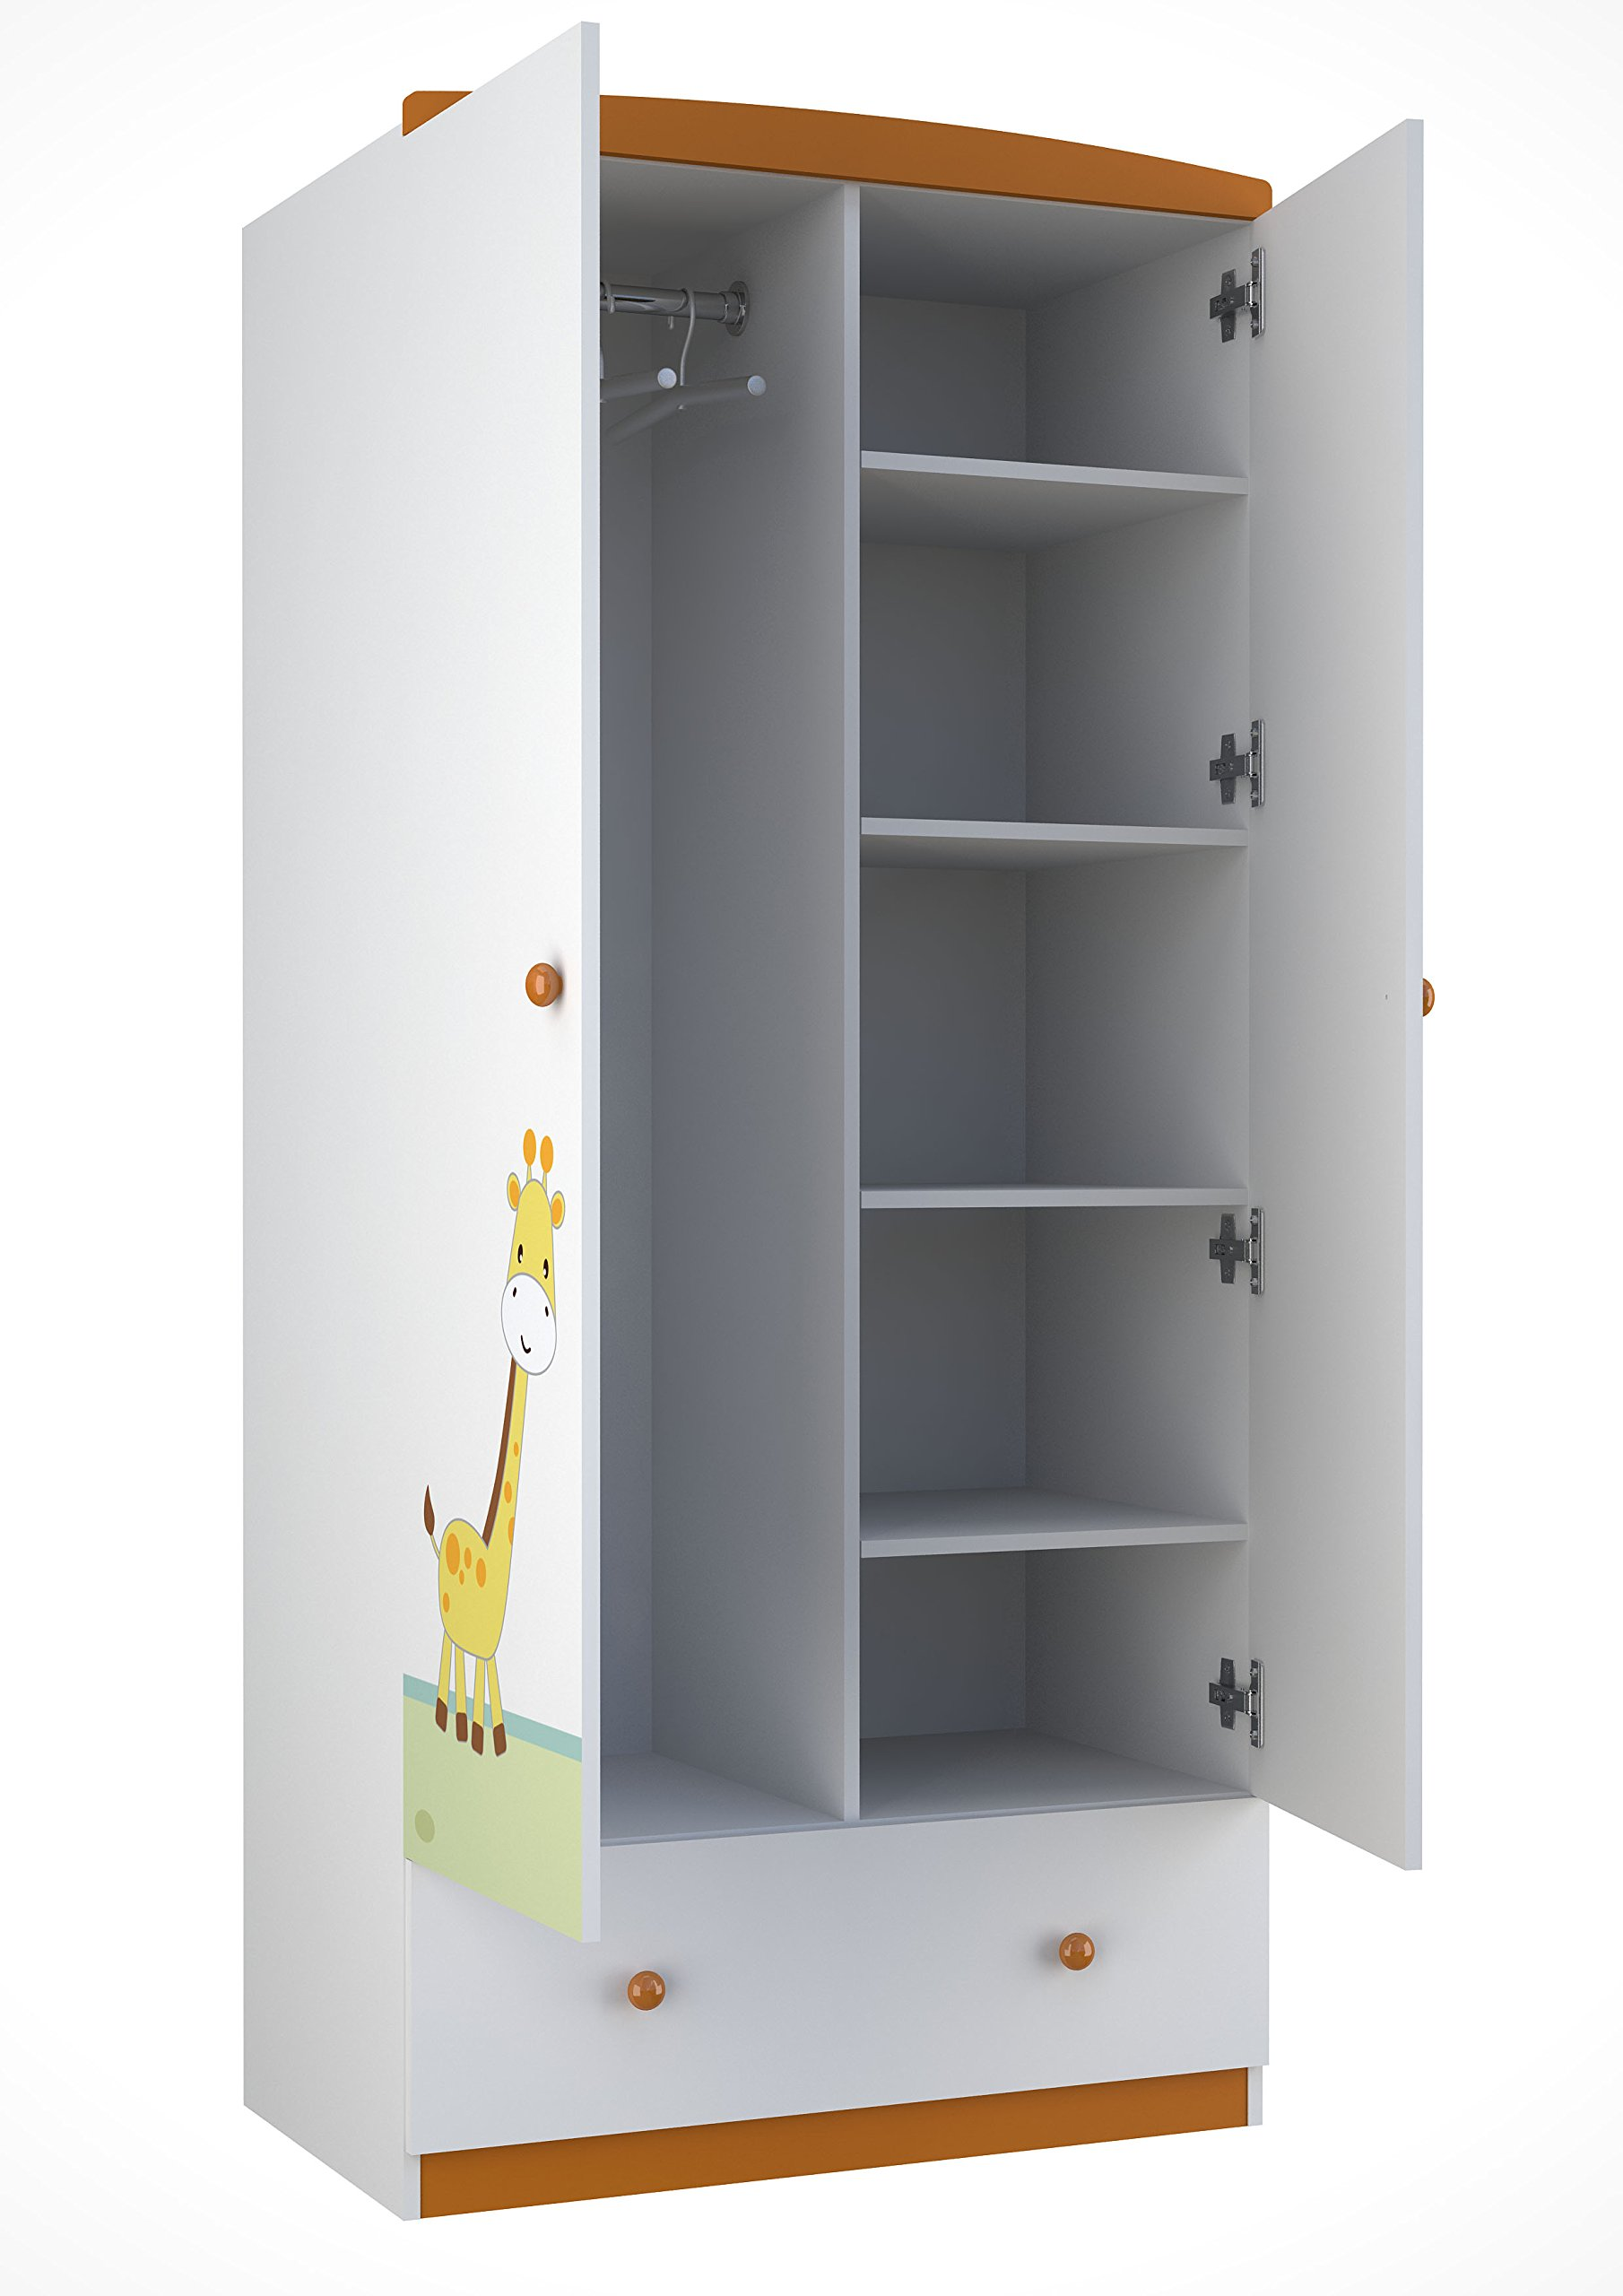 Polini Kids 0001189-1 Basic Collection 2-Section Wardrobe W/Drawers, White-Orange Polini Kids Spacious wardrobe with two sections Made of MFC chipboard from KRONOSPAN (Austria) Comes with 4 shelves and 1 clothes rail 1